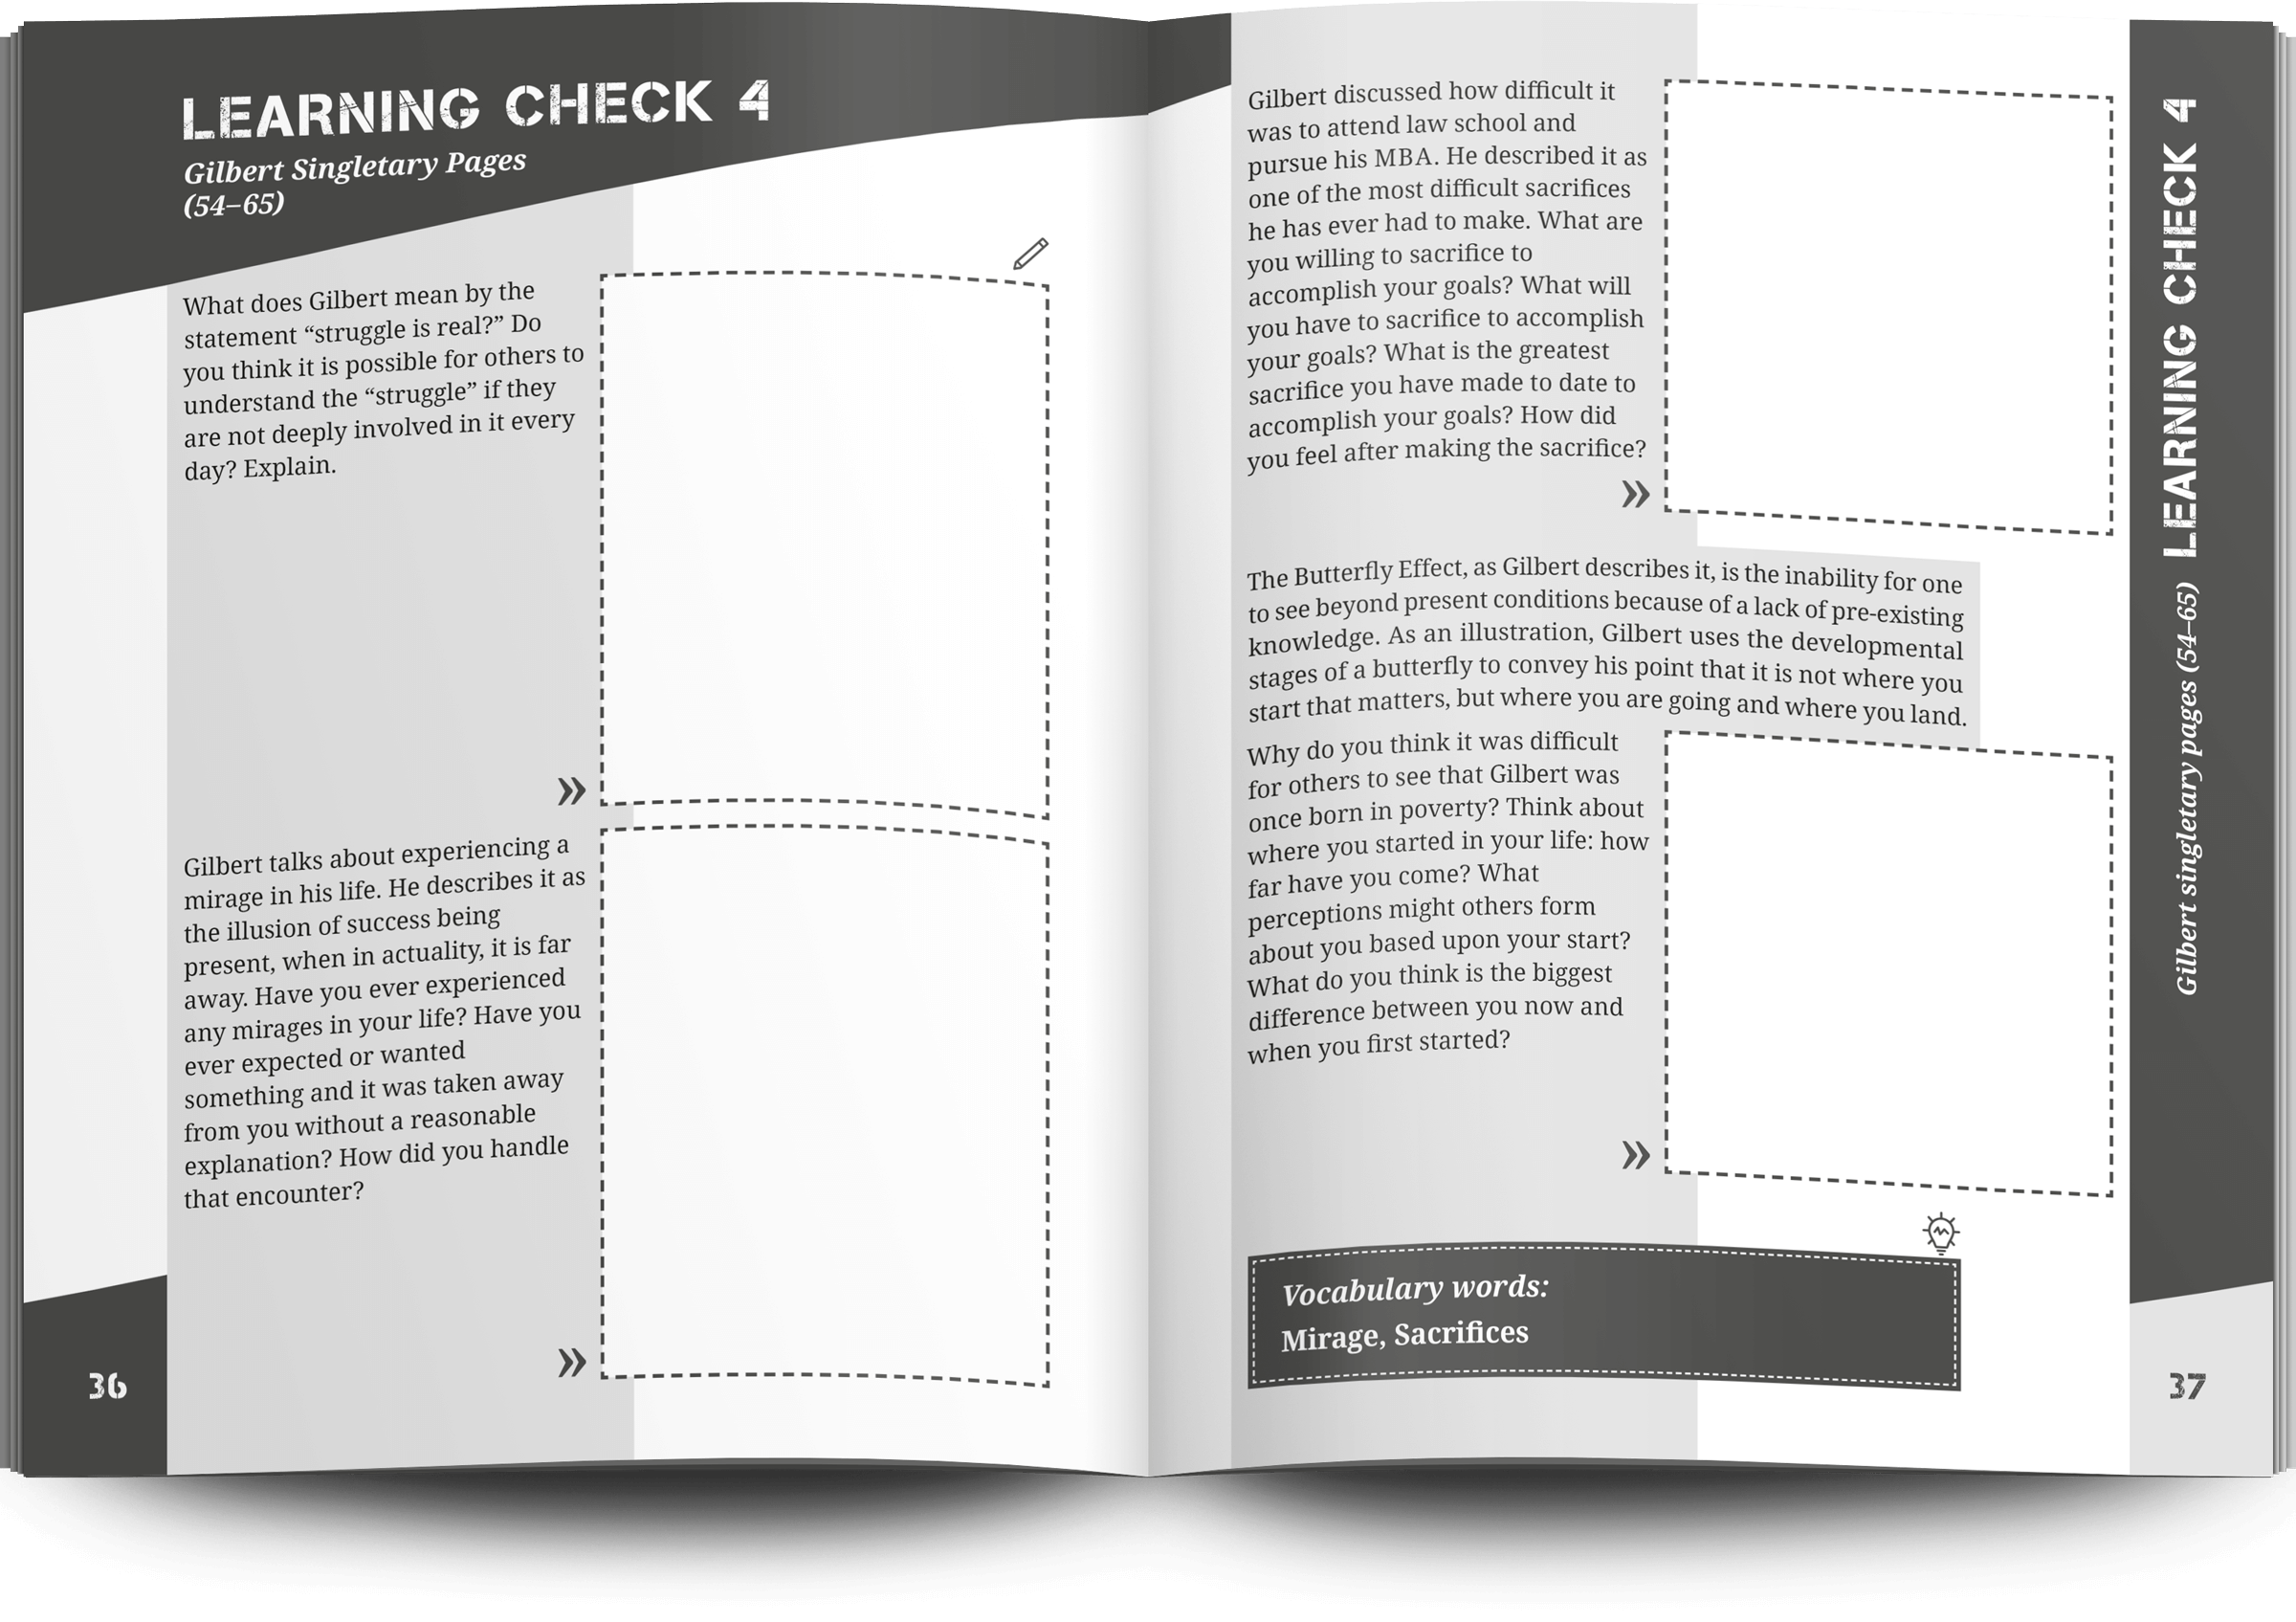 double-page spread layout